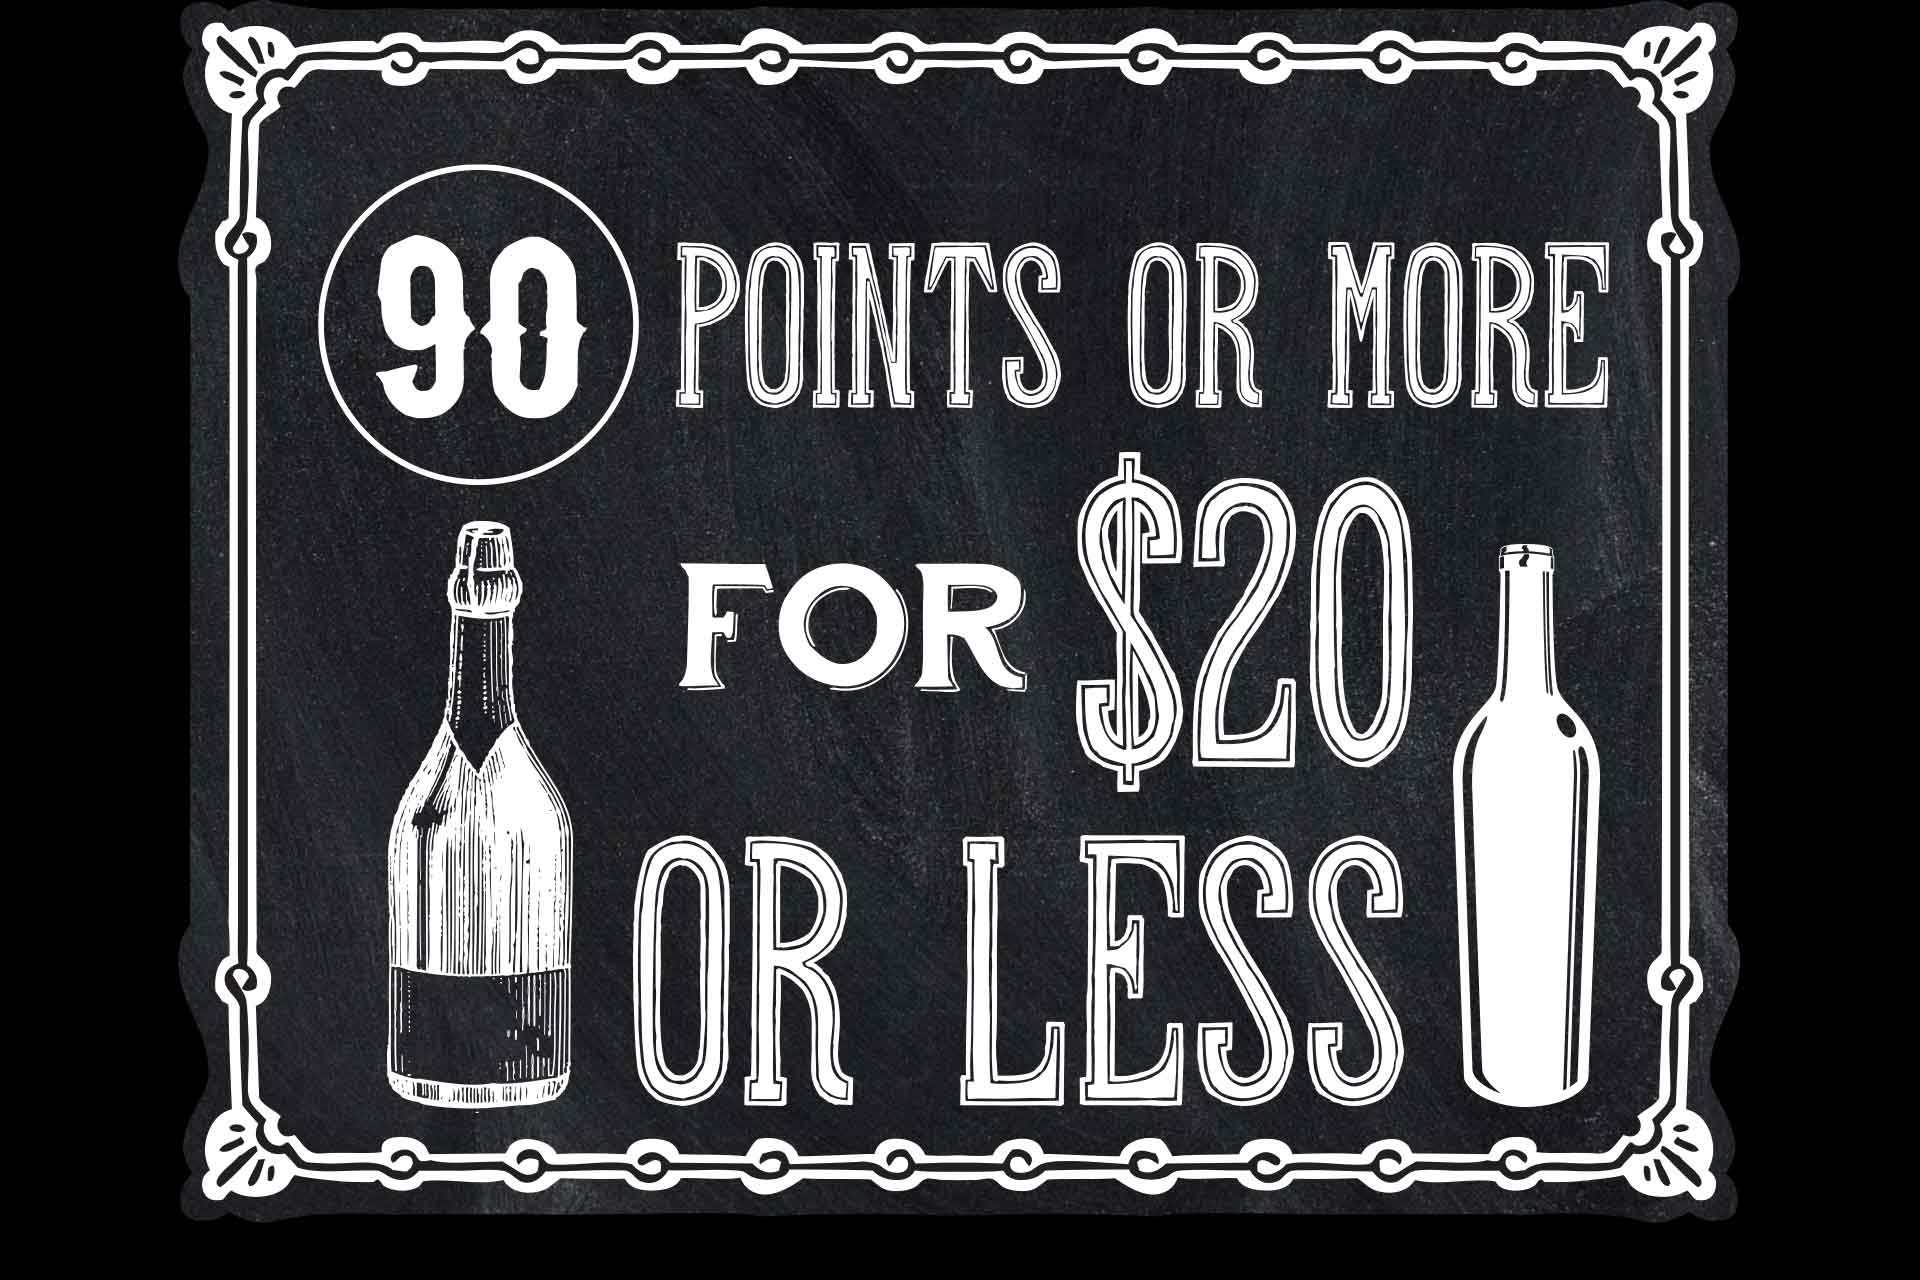 90 points or more for $20 or less